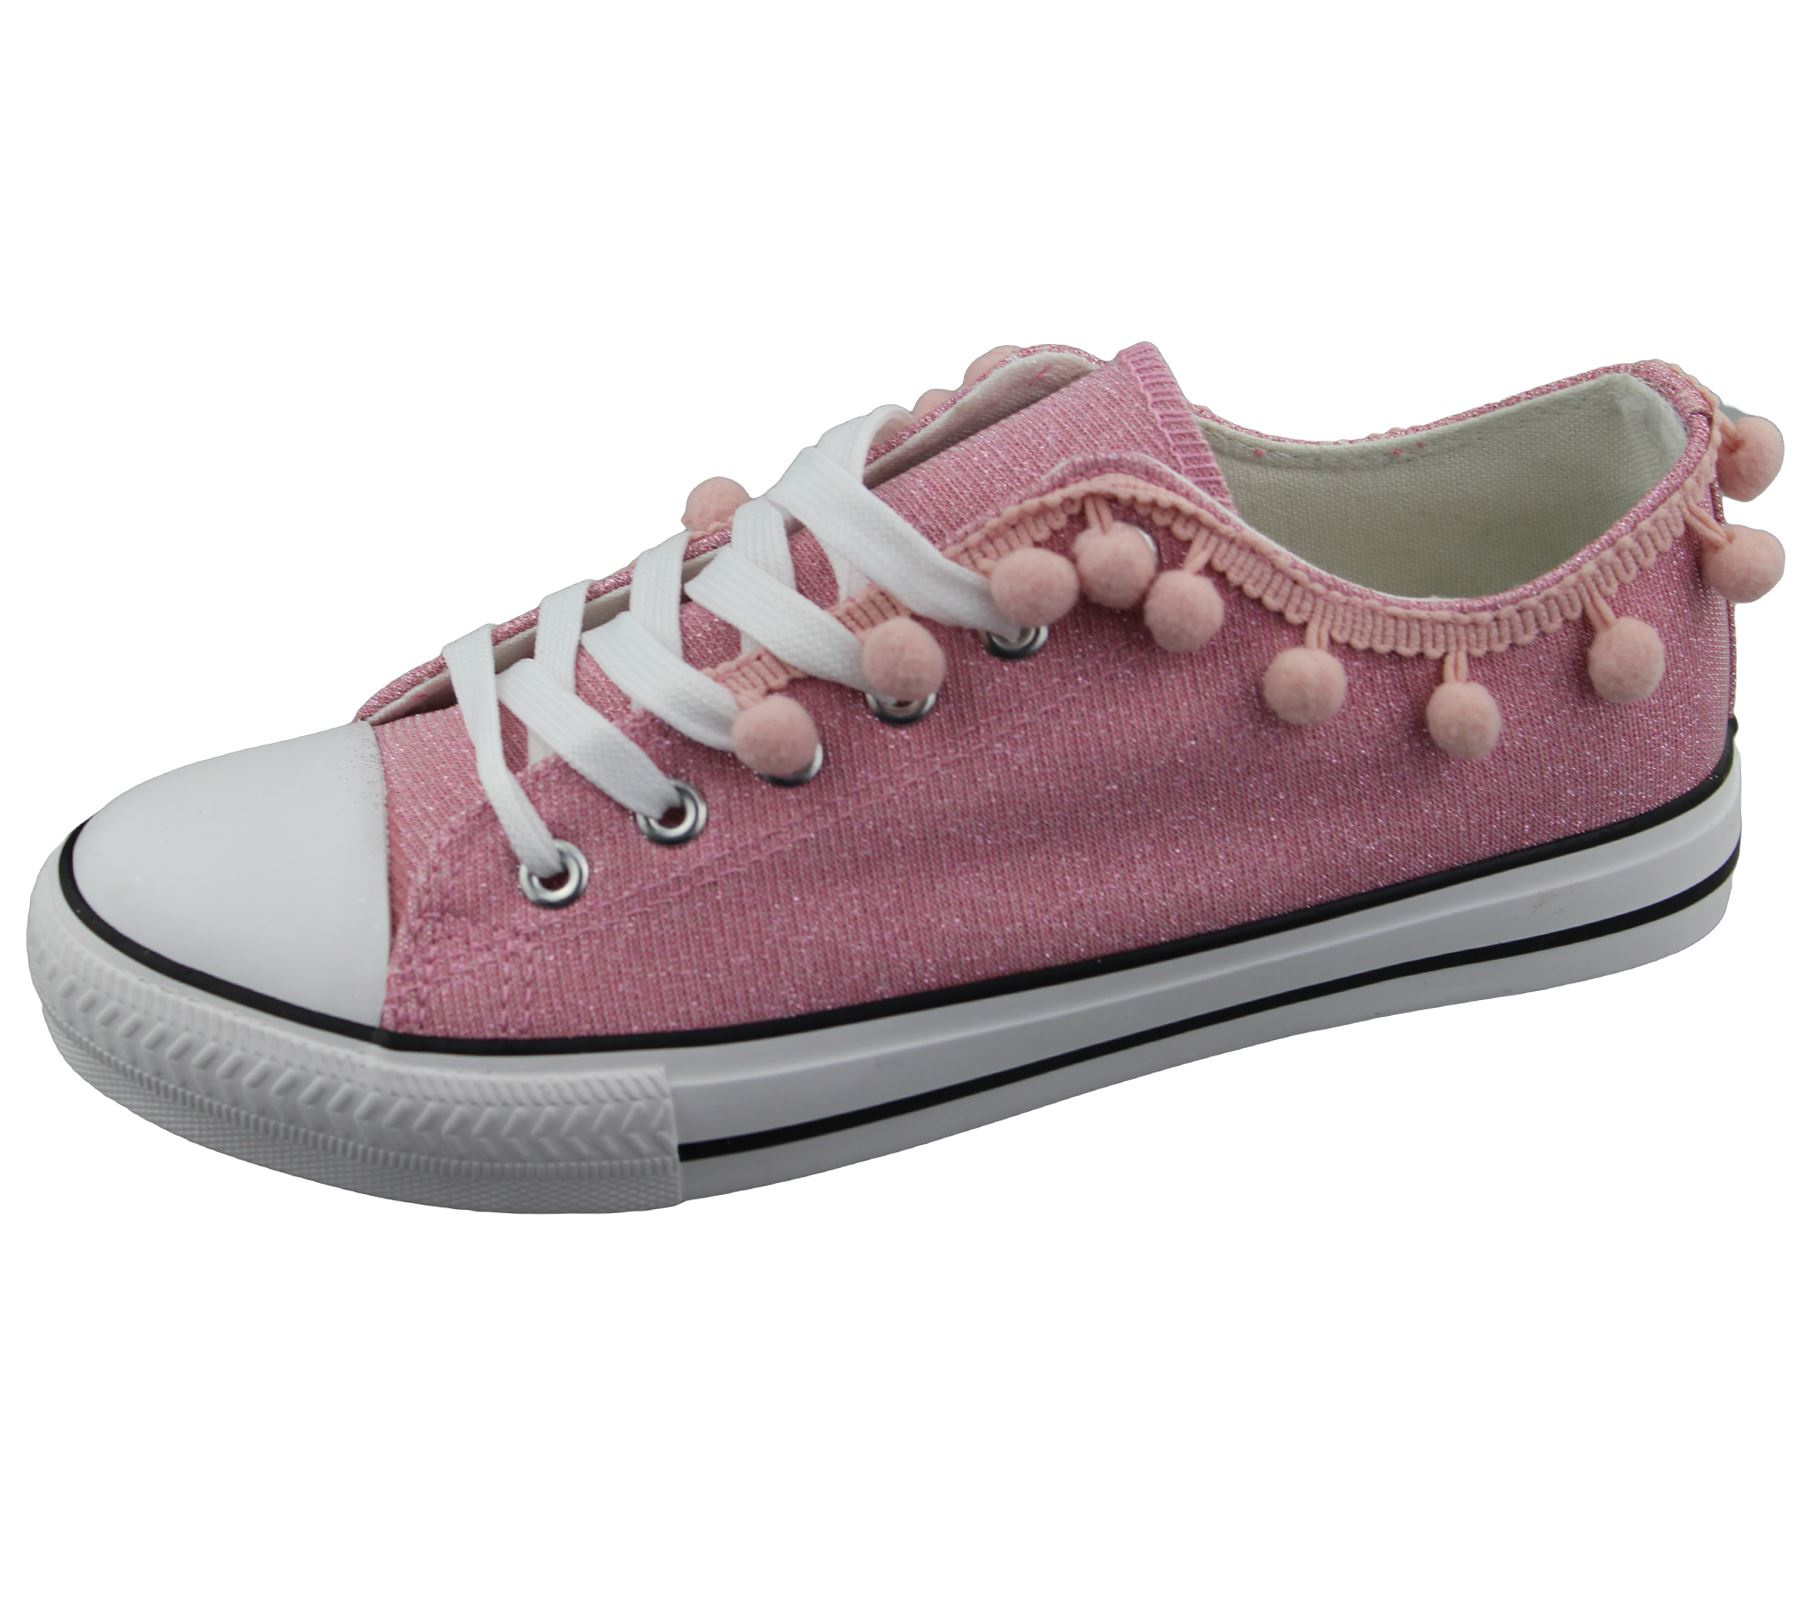 Womens-Sneakers-Flat-Pumps-Ladies-Glittered-Summer-Plimsole-Canvas-Shoes thumbnail 36